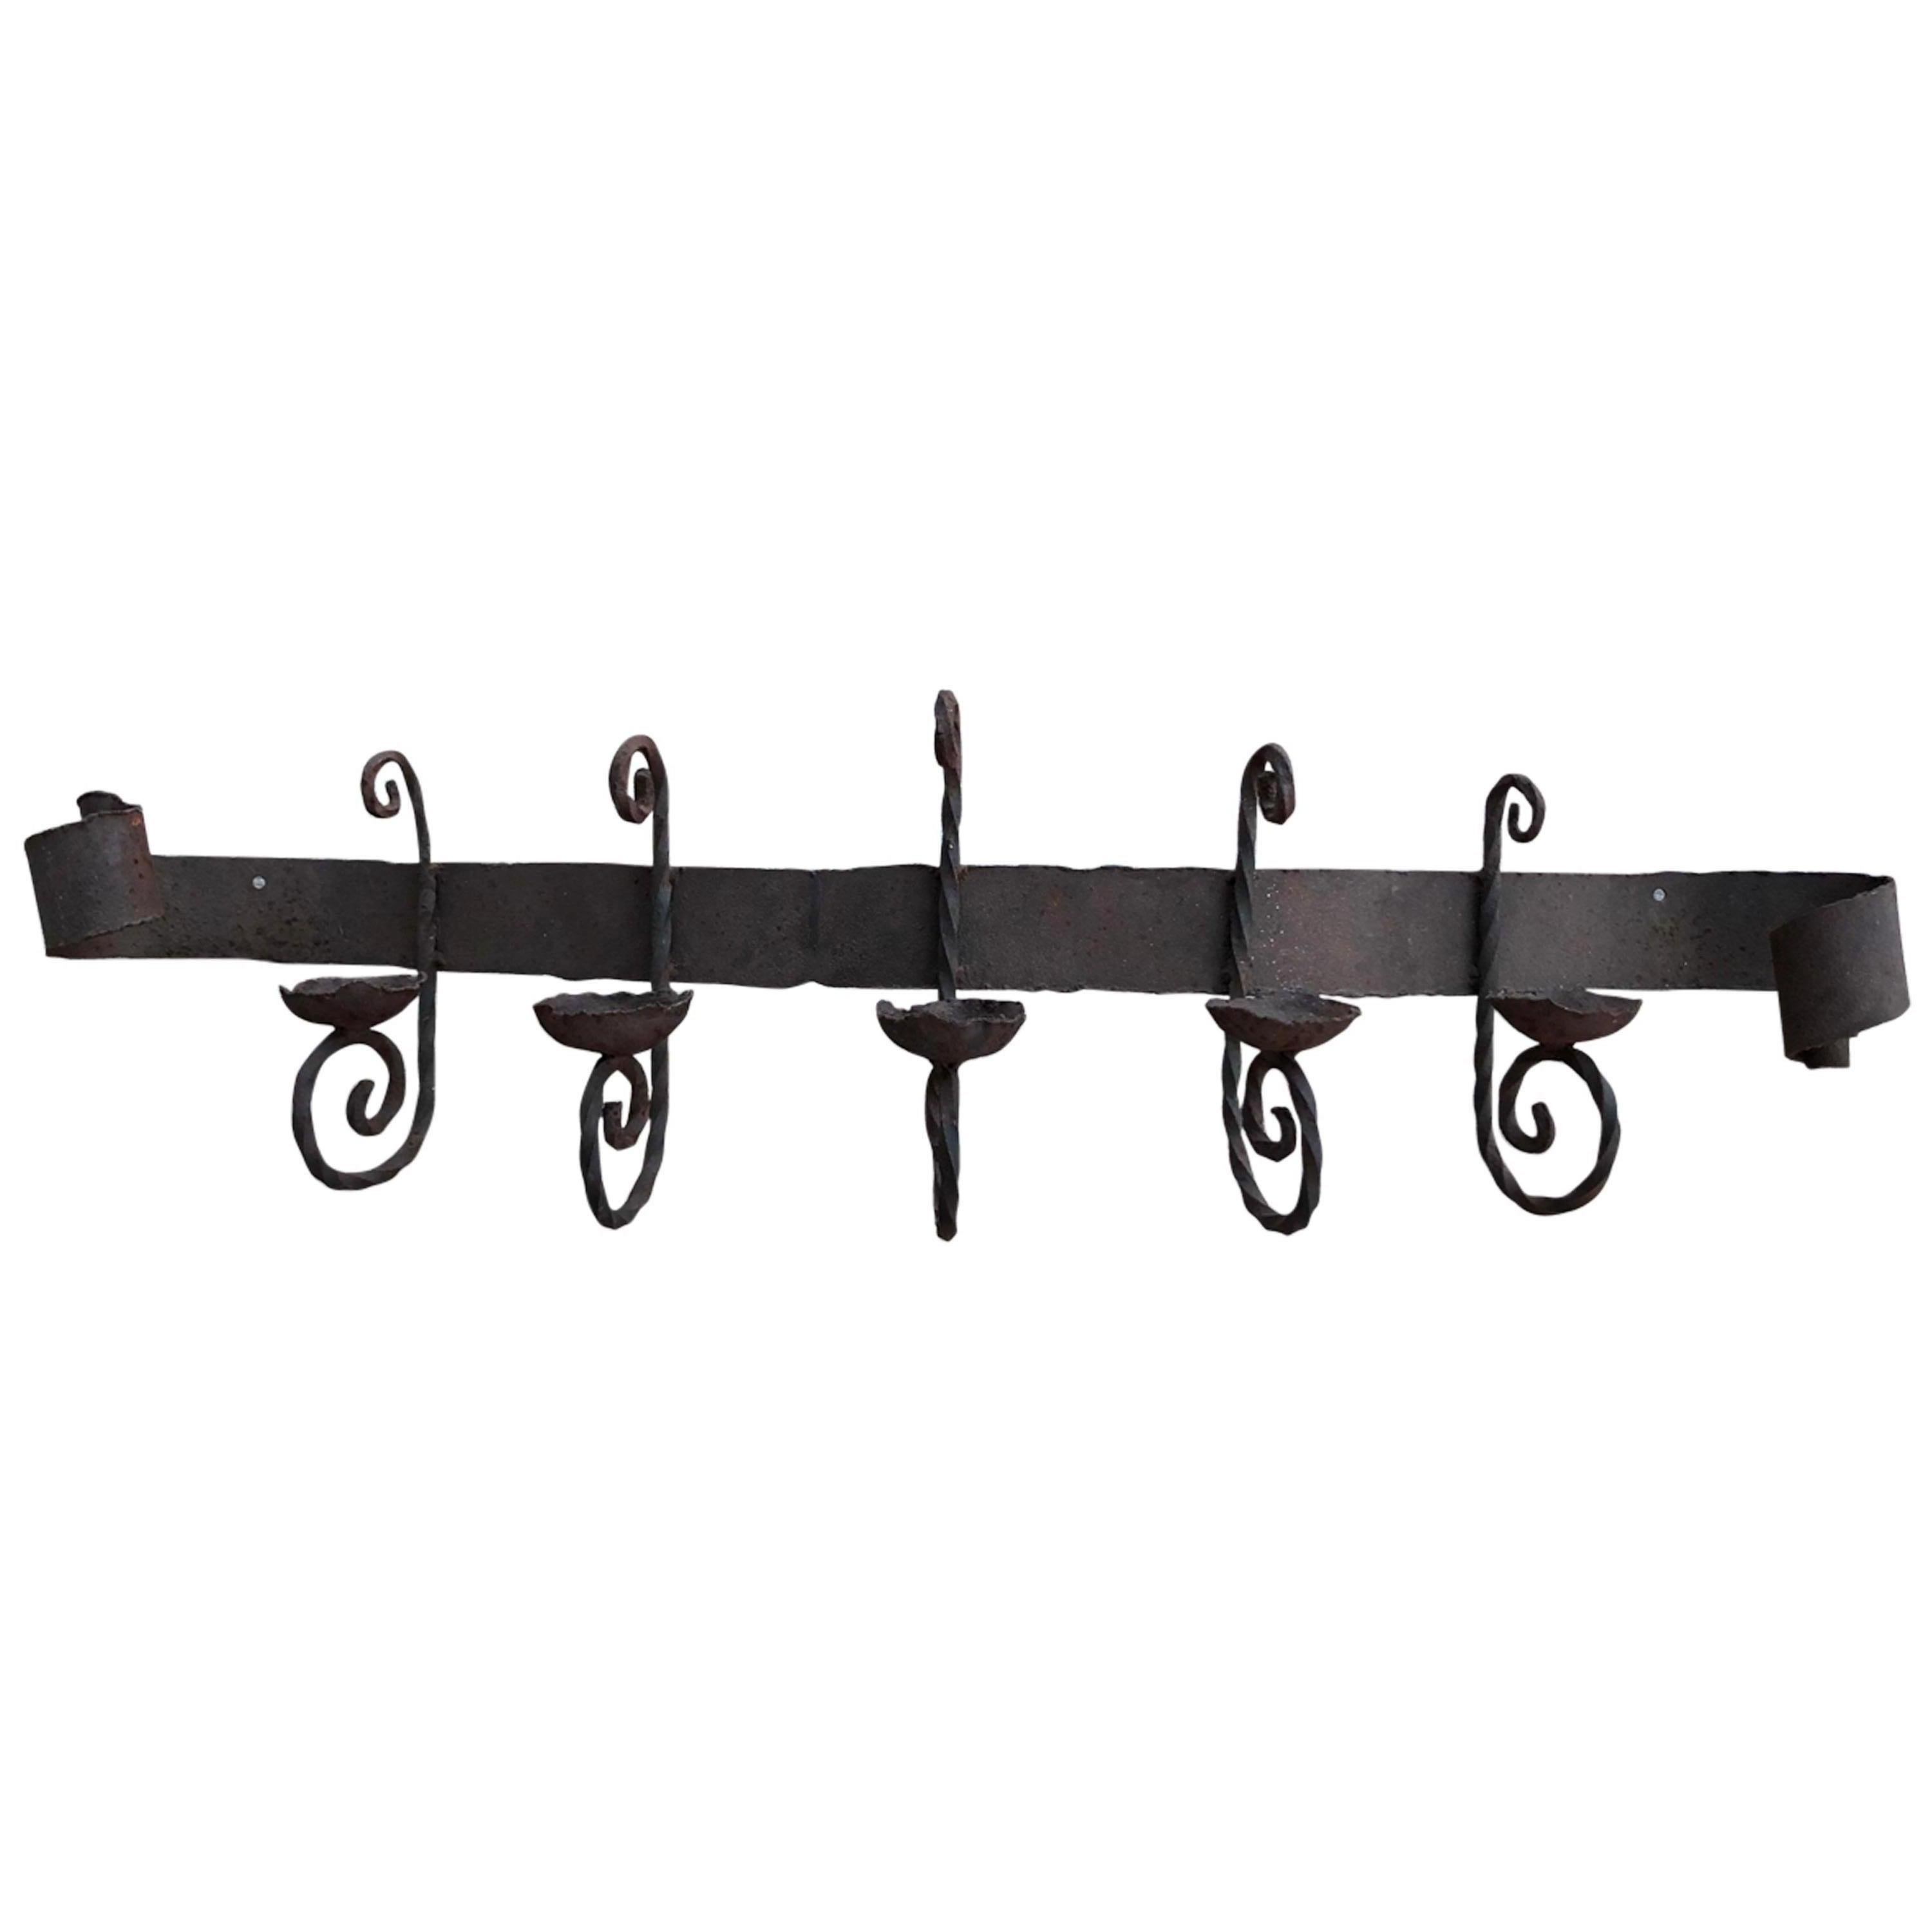 Antique Iron Wall Sconce